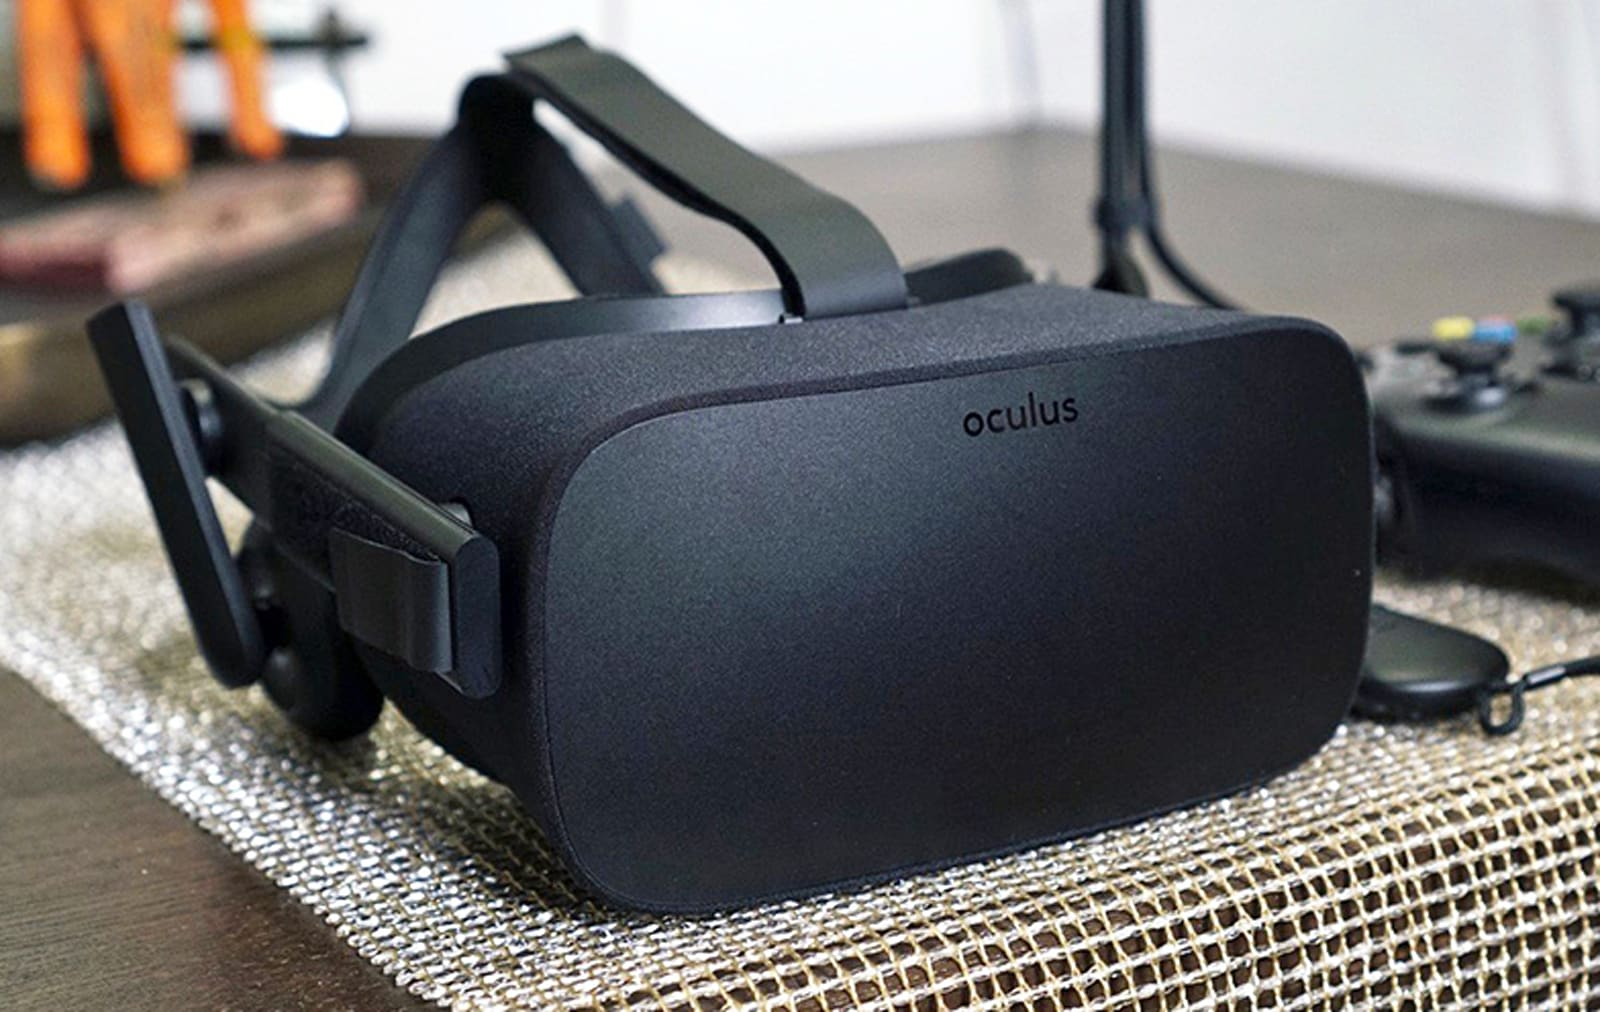 1168e8a6d Back when we reviewed the consumer-ready Oculus Rift in March, we found its  minimum specs requiring an Intel Core i5 4590 (or equivalent) processor and  an ...